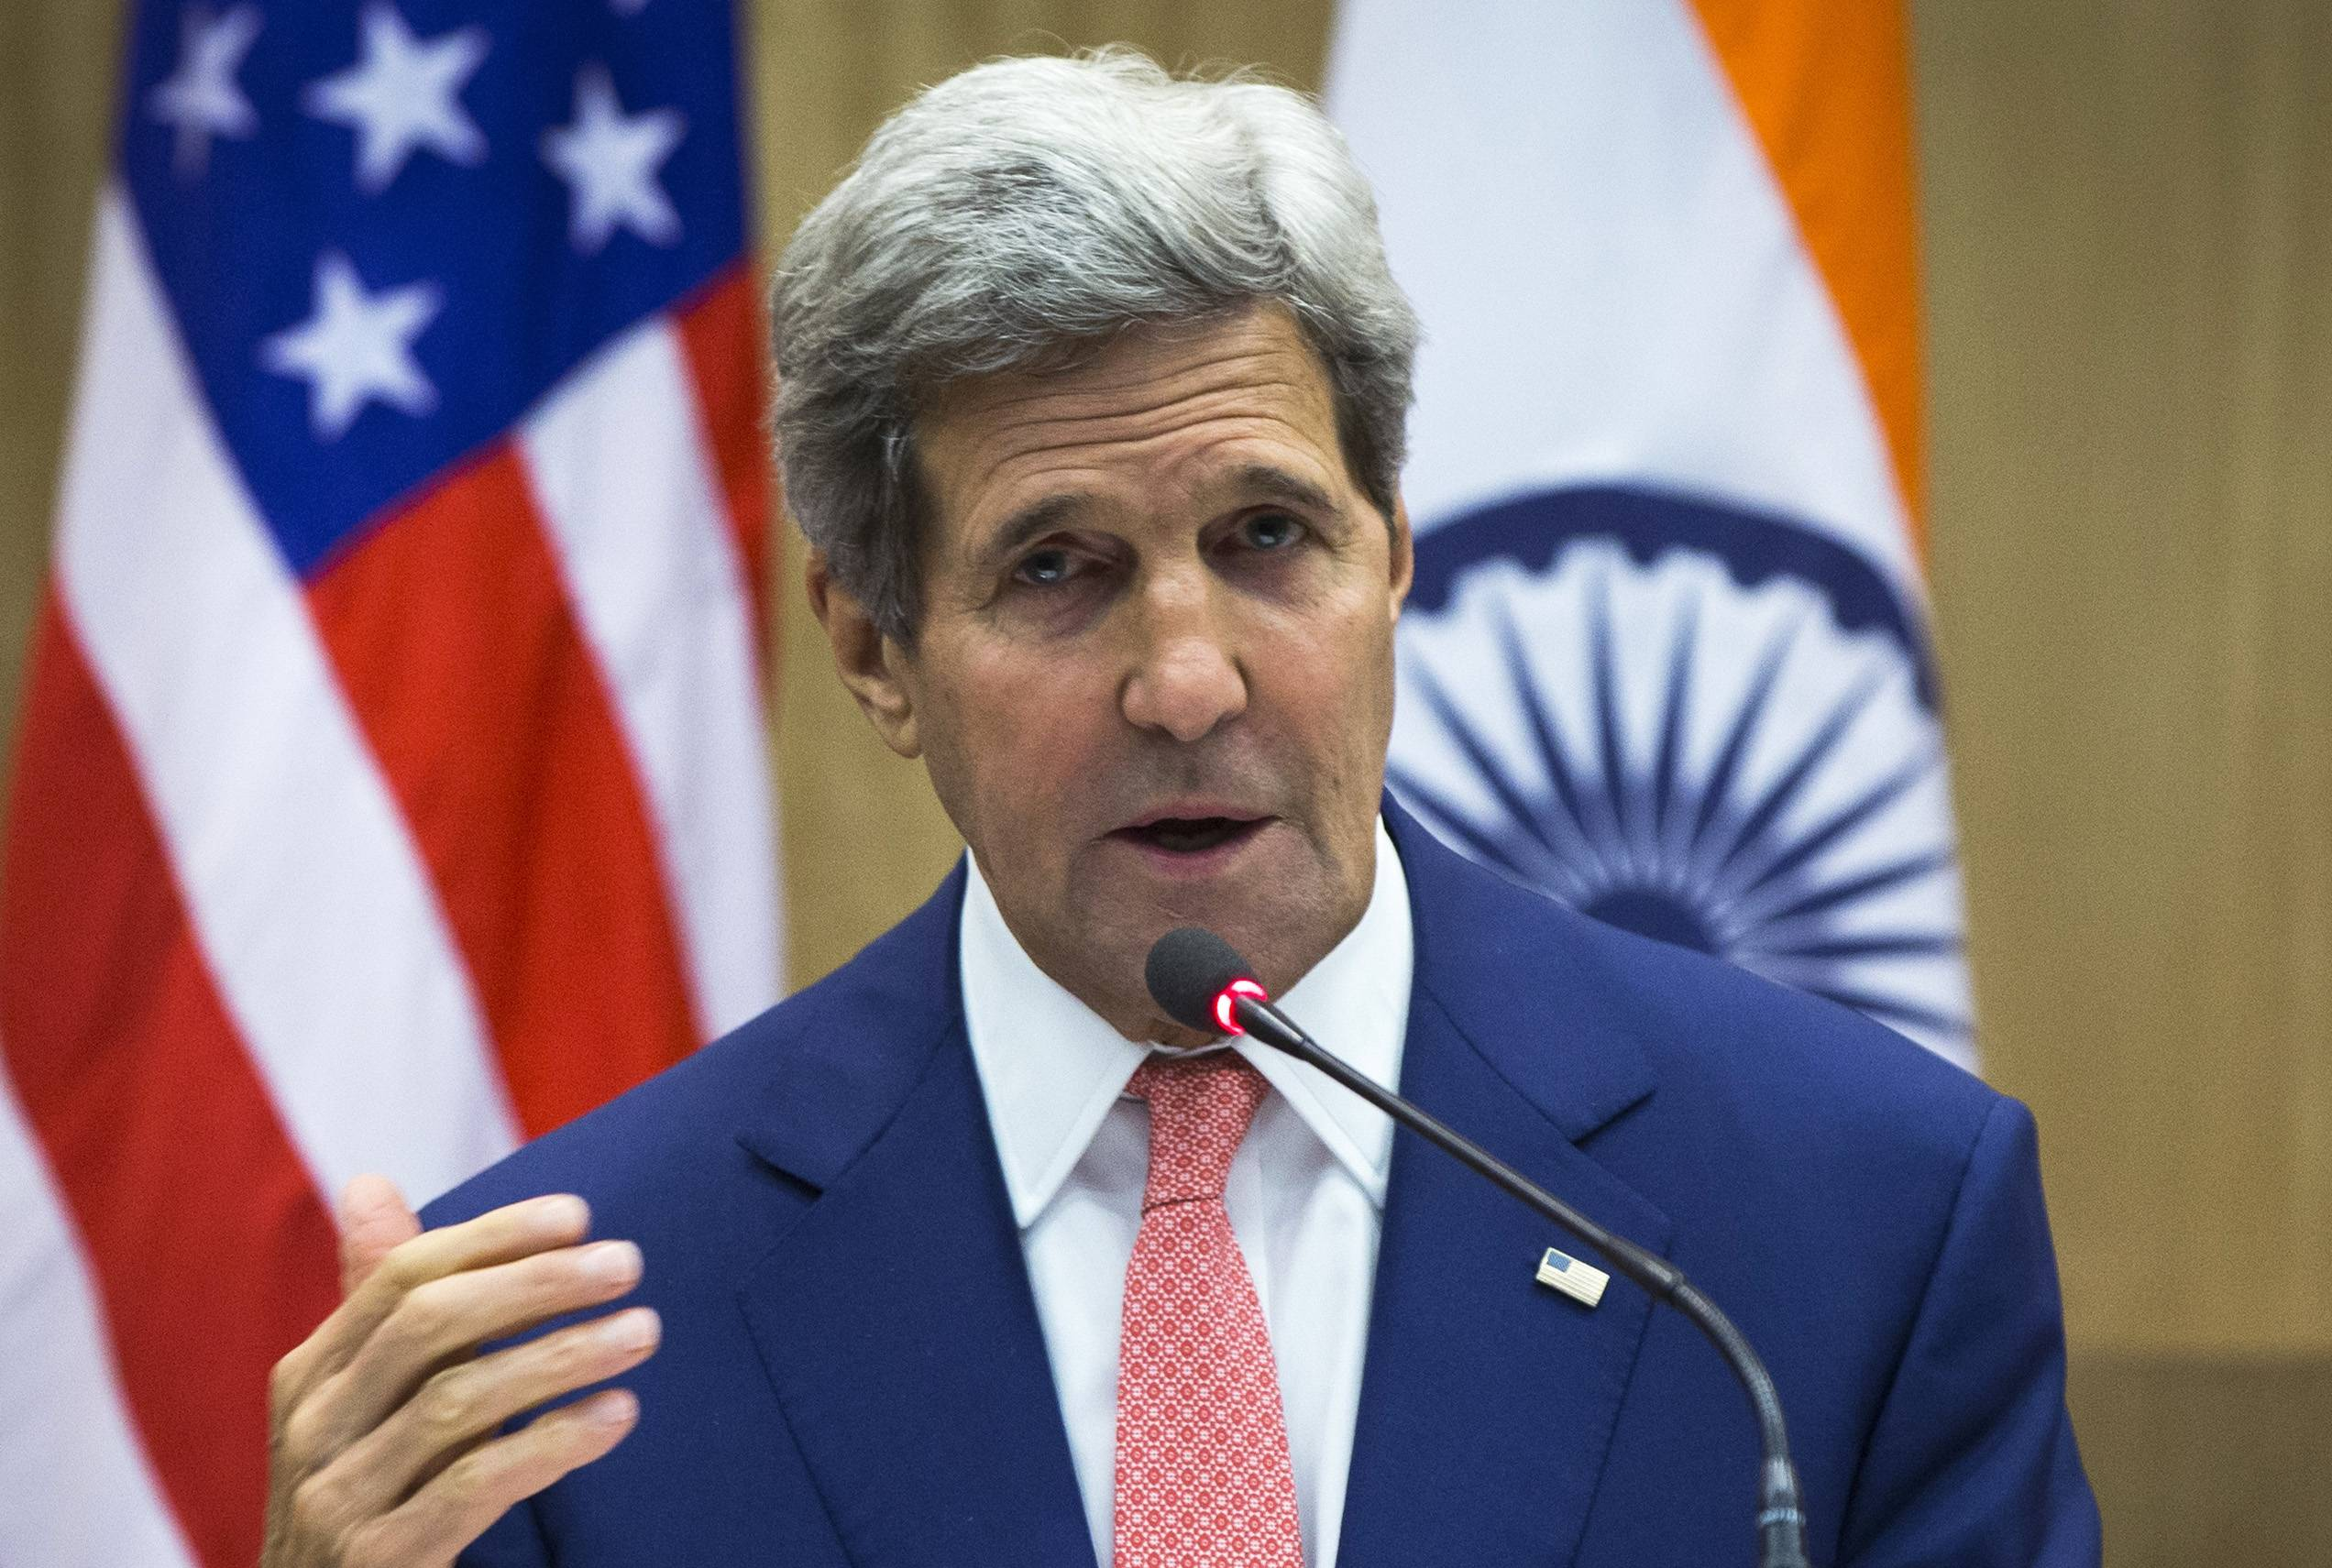 U.S. Secretary of State John Kerry made more than 100 calls over the last 10 days, including several dozen on Thursday alone, to broker a cease-fire plan to stop the bloodshed in the Gaza Strip.